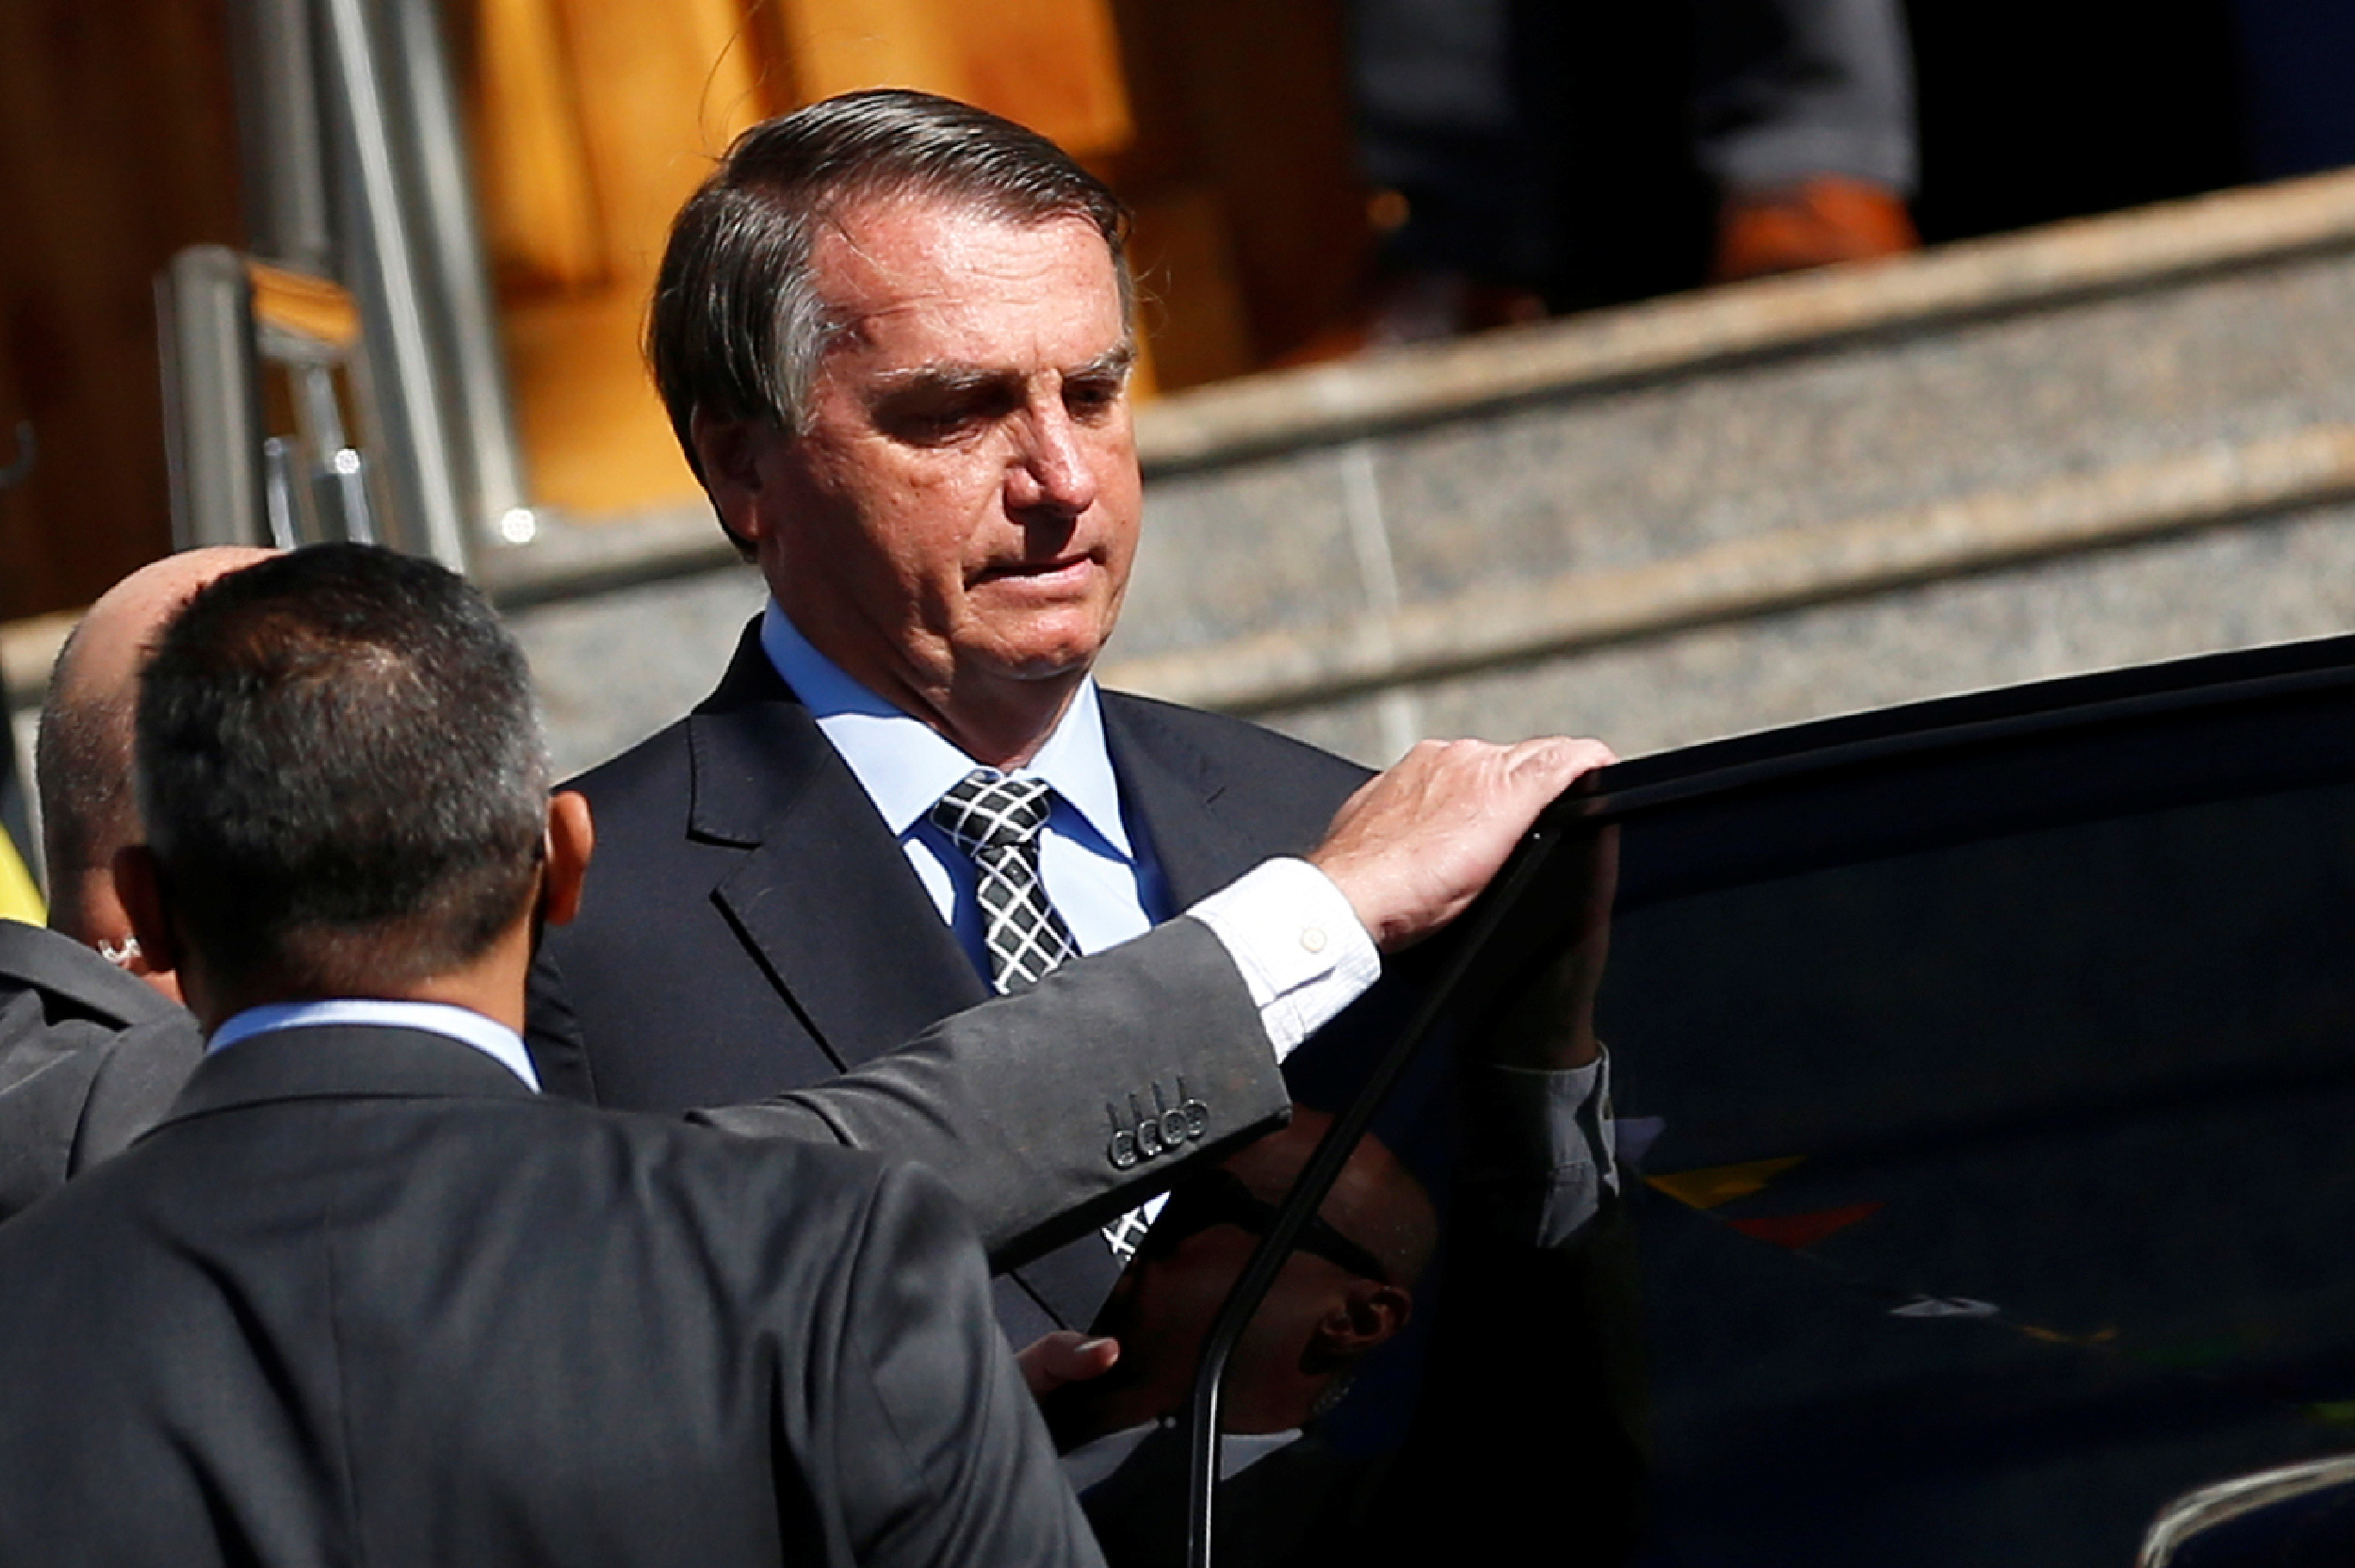 Brazil's President Jair Bolsonaro gets in a vehicle after attending Mass at a Catholic church in Brasilia, Brazil July 1, 2021. REUTERS/Adriano Machado